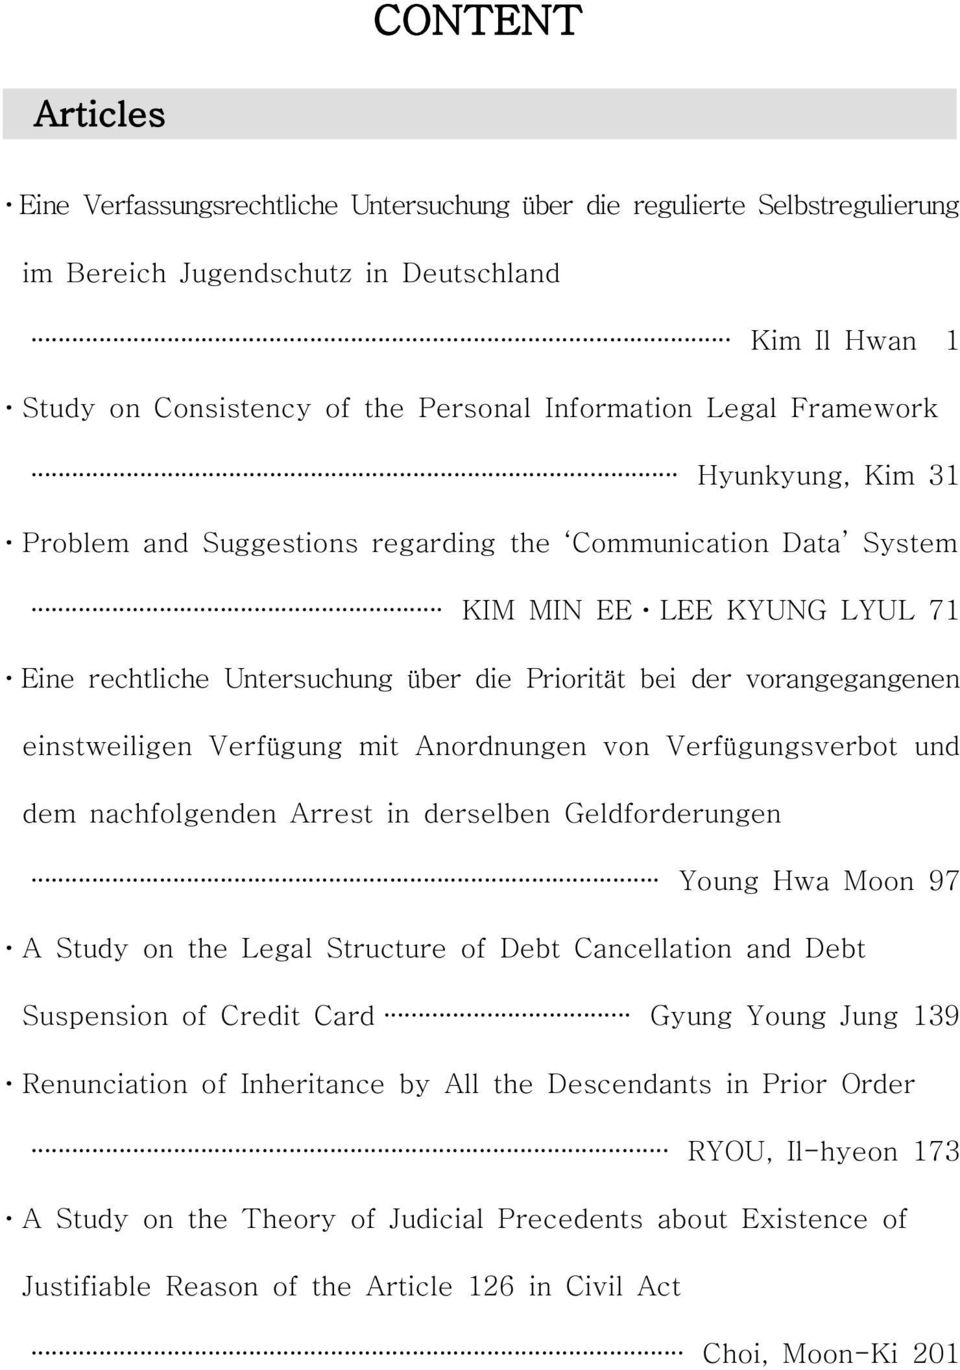 einstweiligen Verfügung mit Anordnungen von Verfügungsverbot und dem nachfolgenden Arrest in derselben Geldforderungen Young Hwa Moon 97 A Study on the Legal Structure of Debt Cancellation and Debt